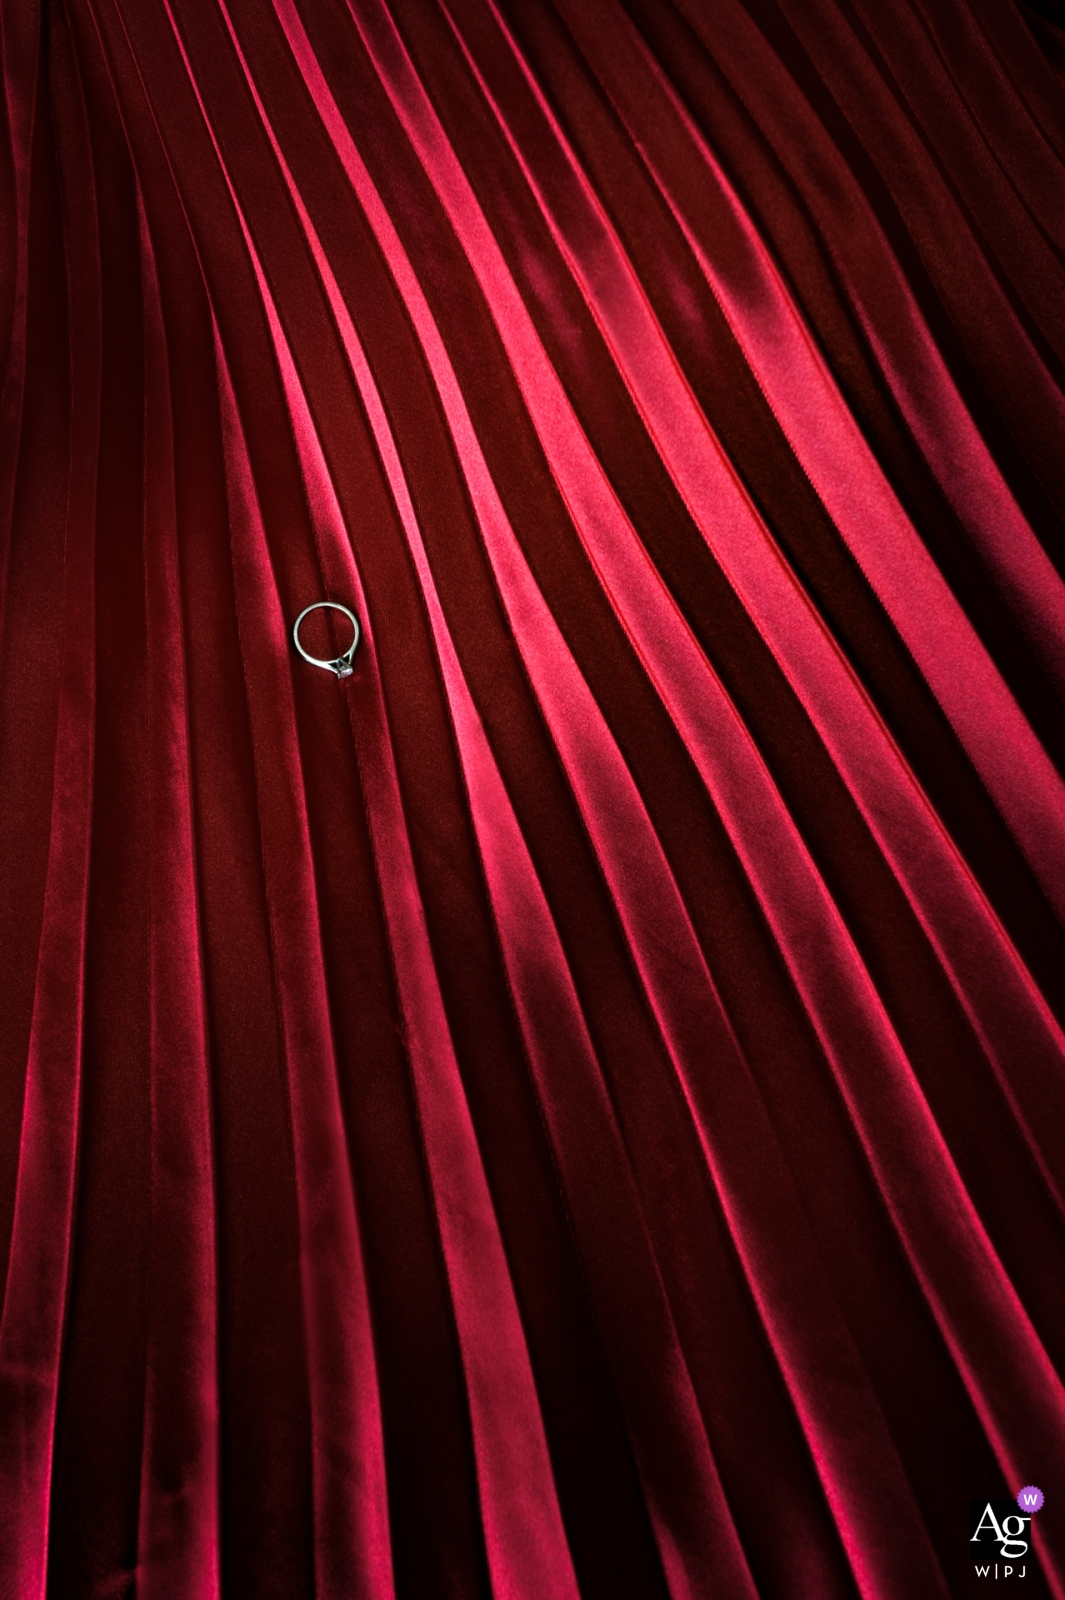 Hunan wedding detail photo: A wedding ring on red and black